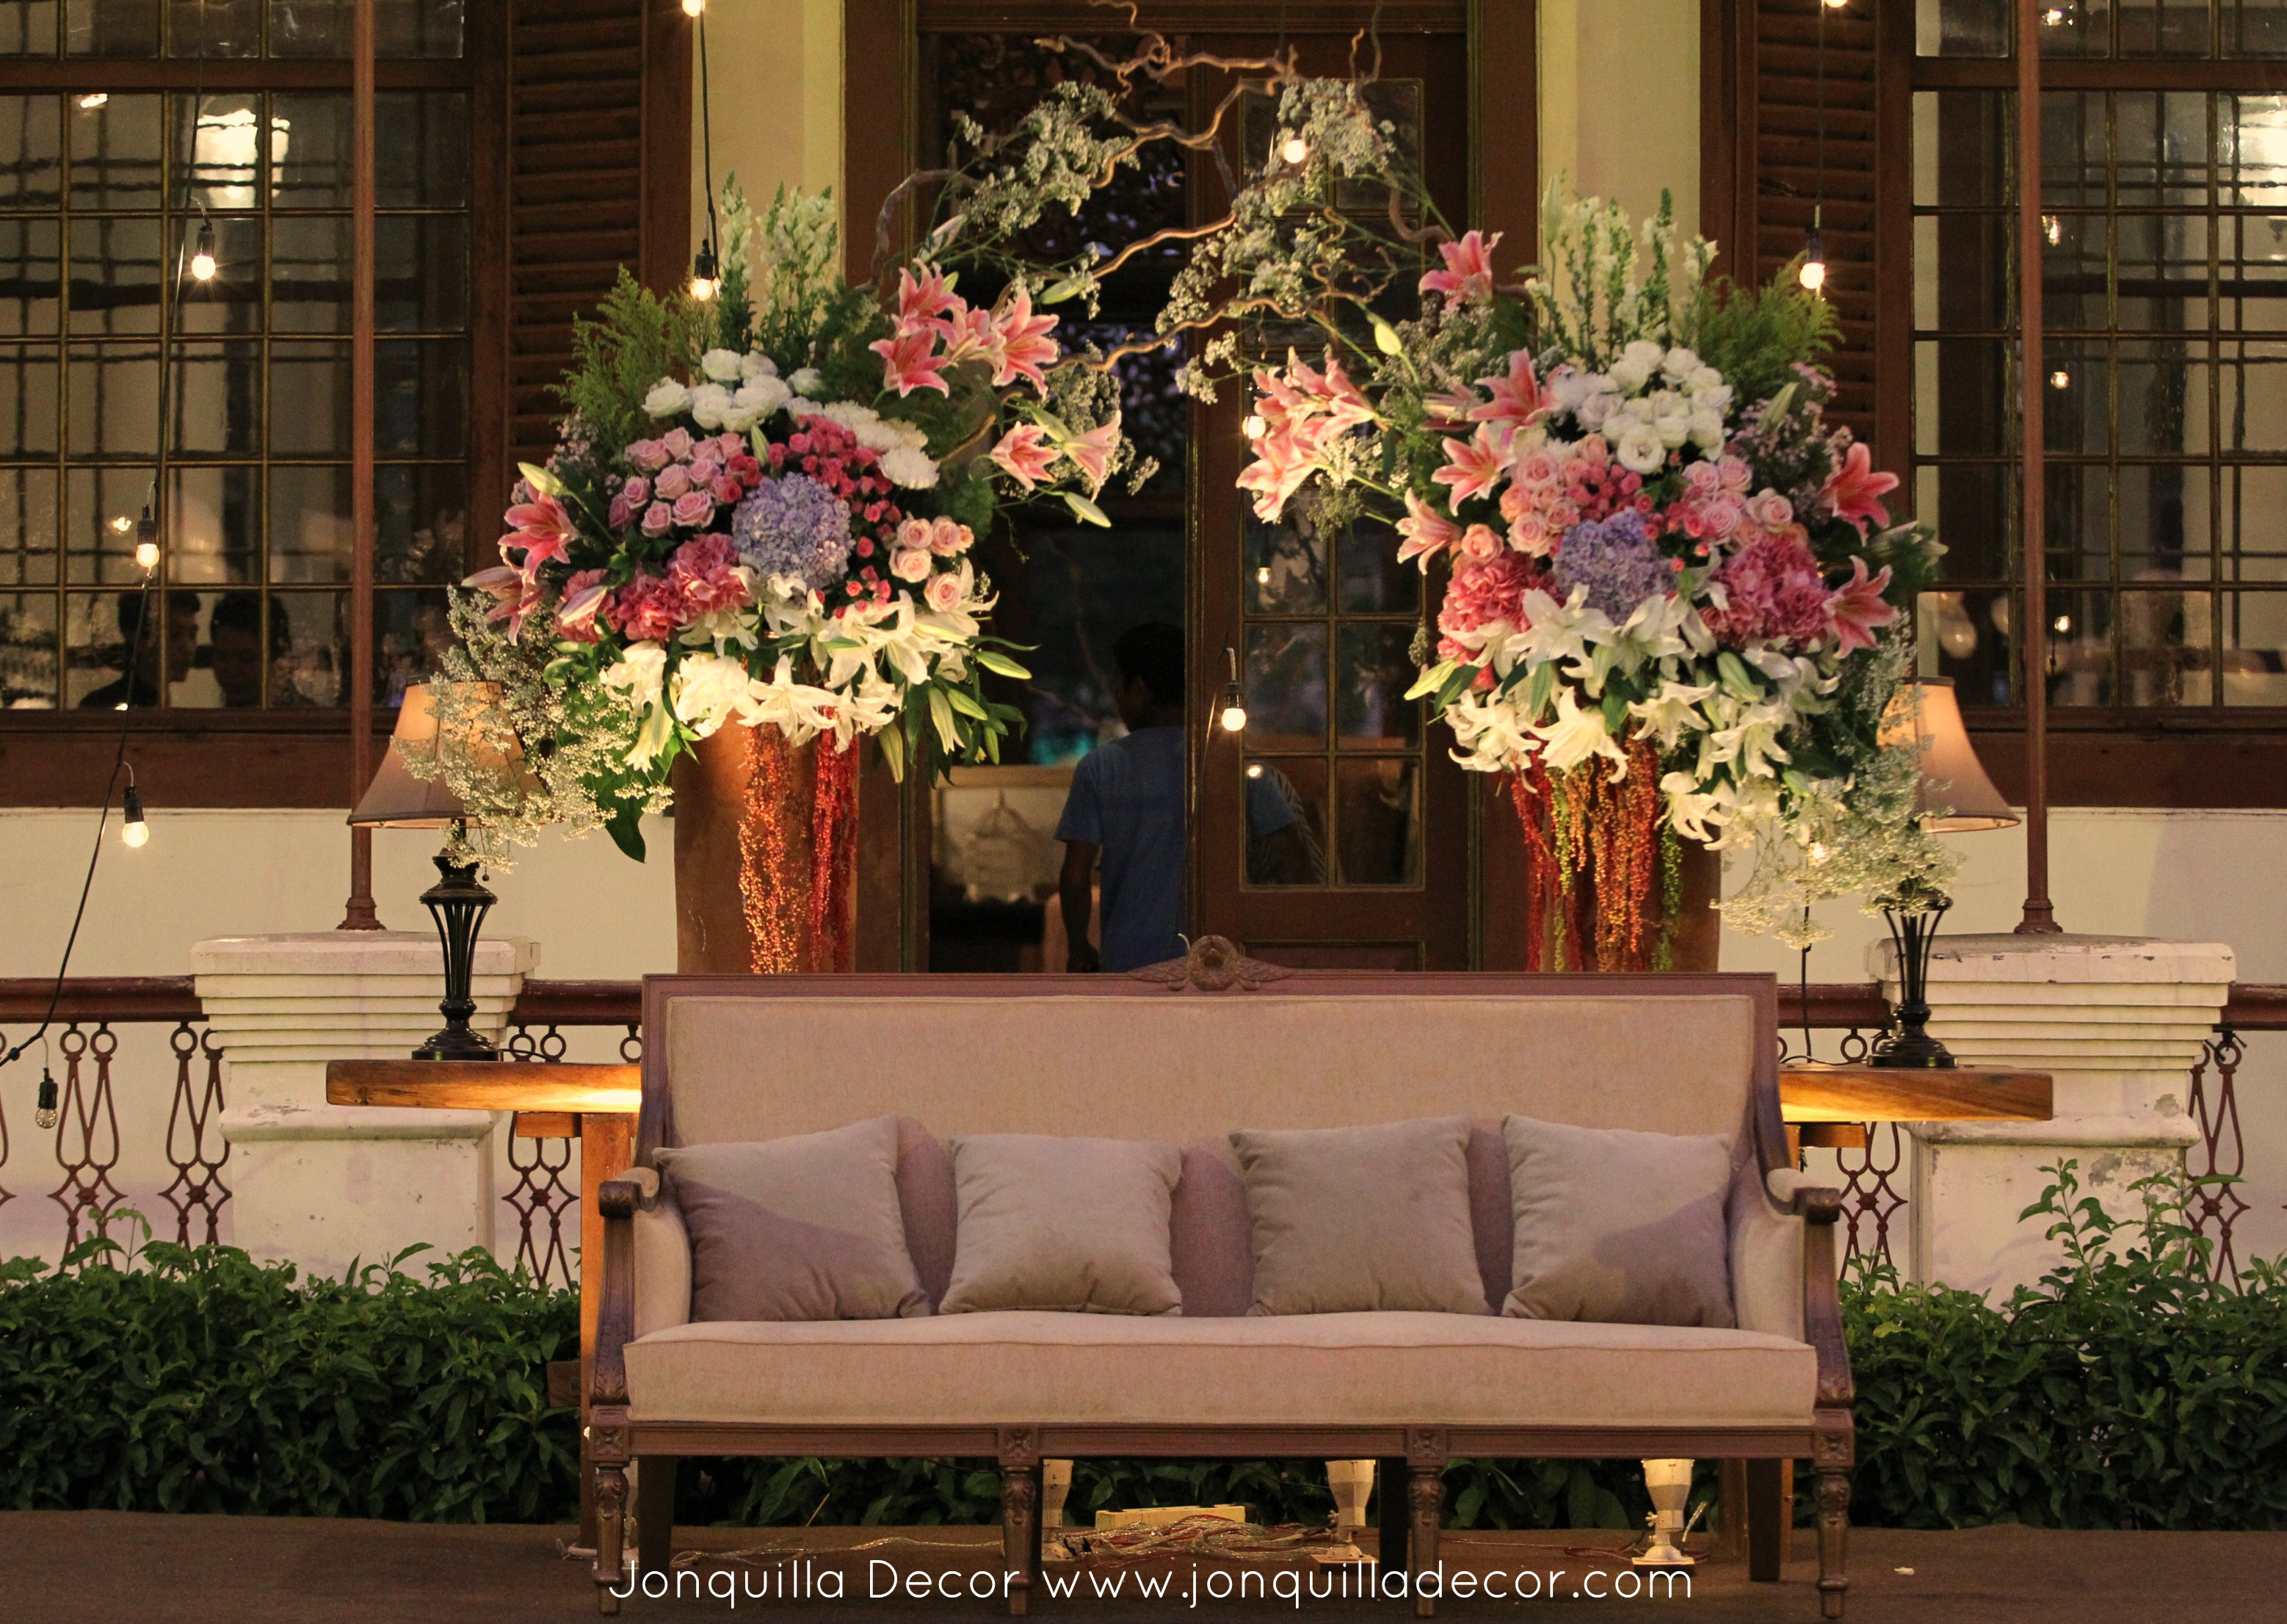 Giselle and gading soft pink wedding at gedung arsip jakarta we met giselle and gading for the first time at plaza senayan for decoration meeting and i who often heard or saw their names on tv was initially a bit junglespirit Gallery